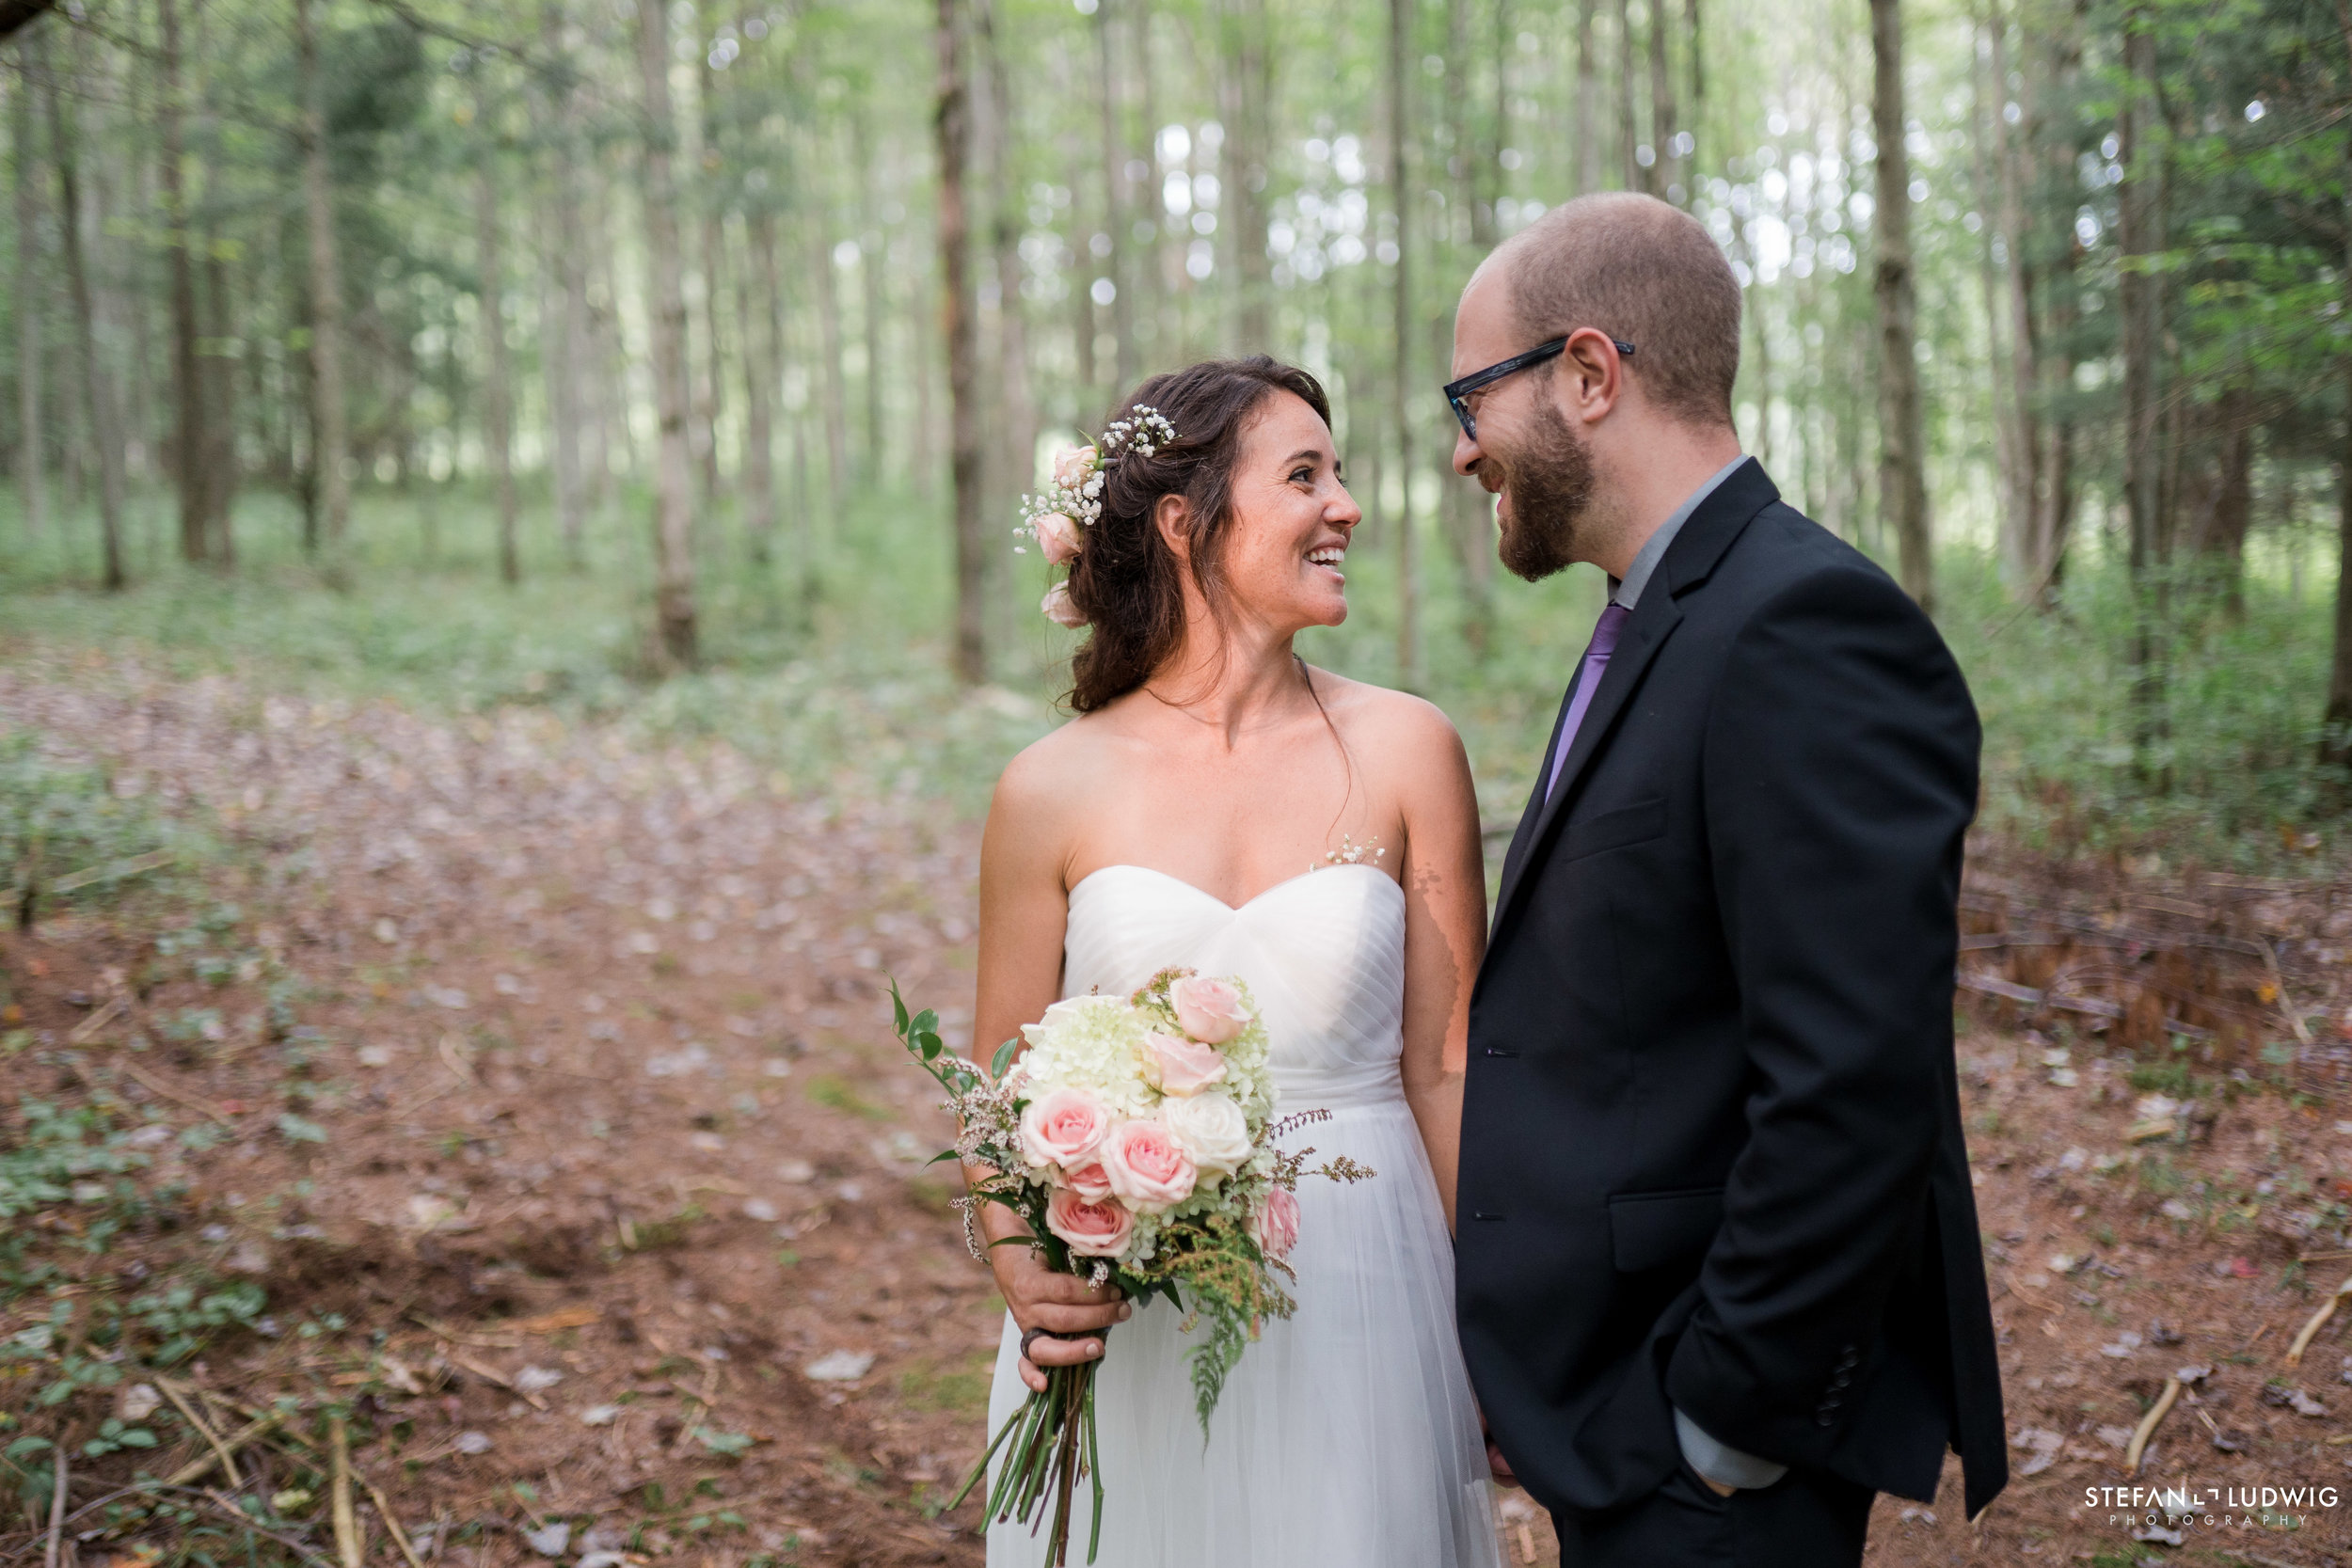 Blog Wedding Photography Mariana and John in Ellicottville NY by Stefan Ludwig Photography-45.jpg